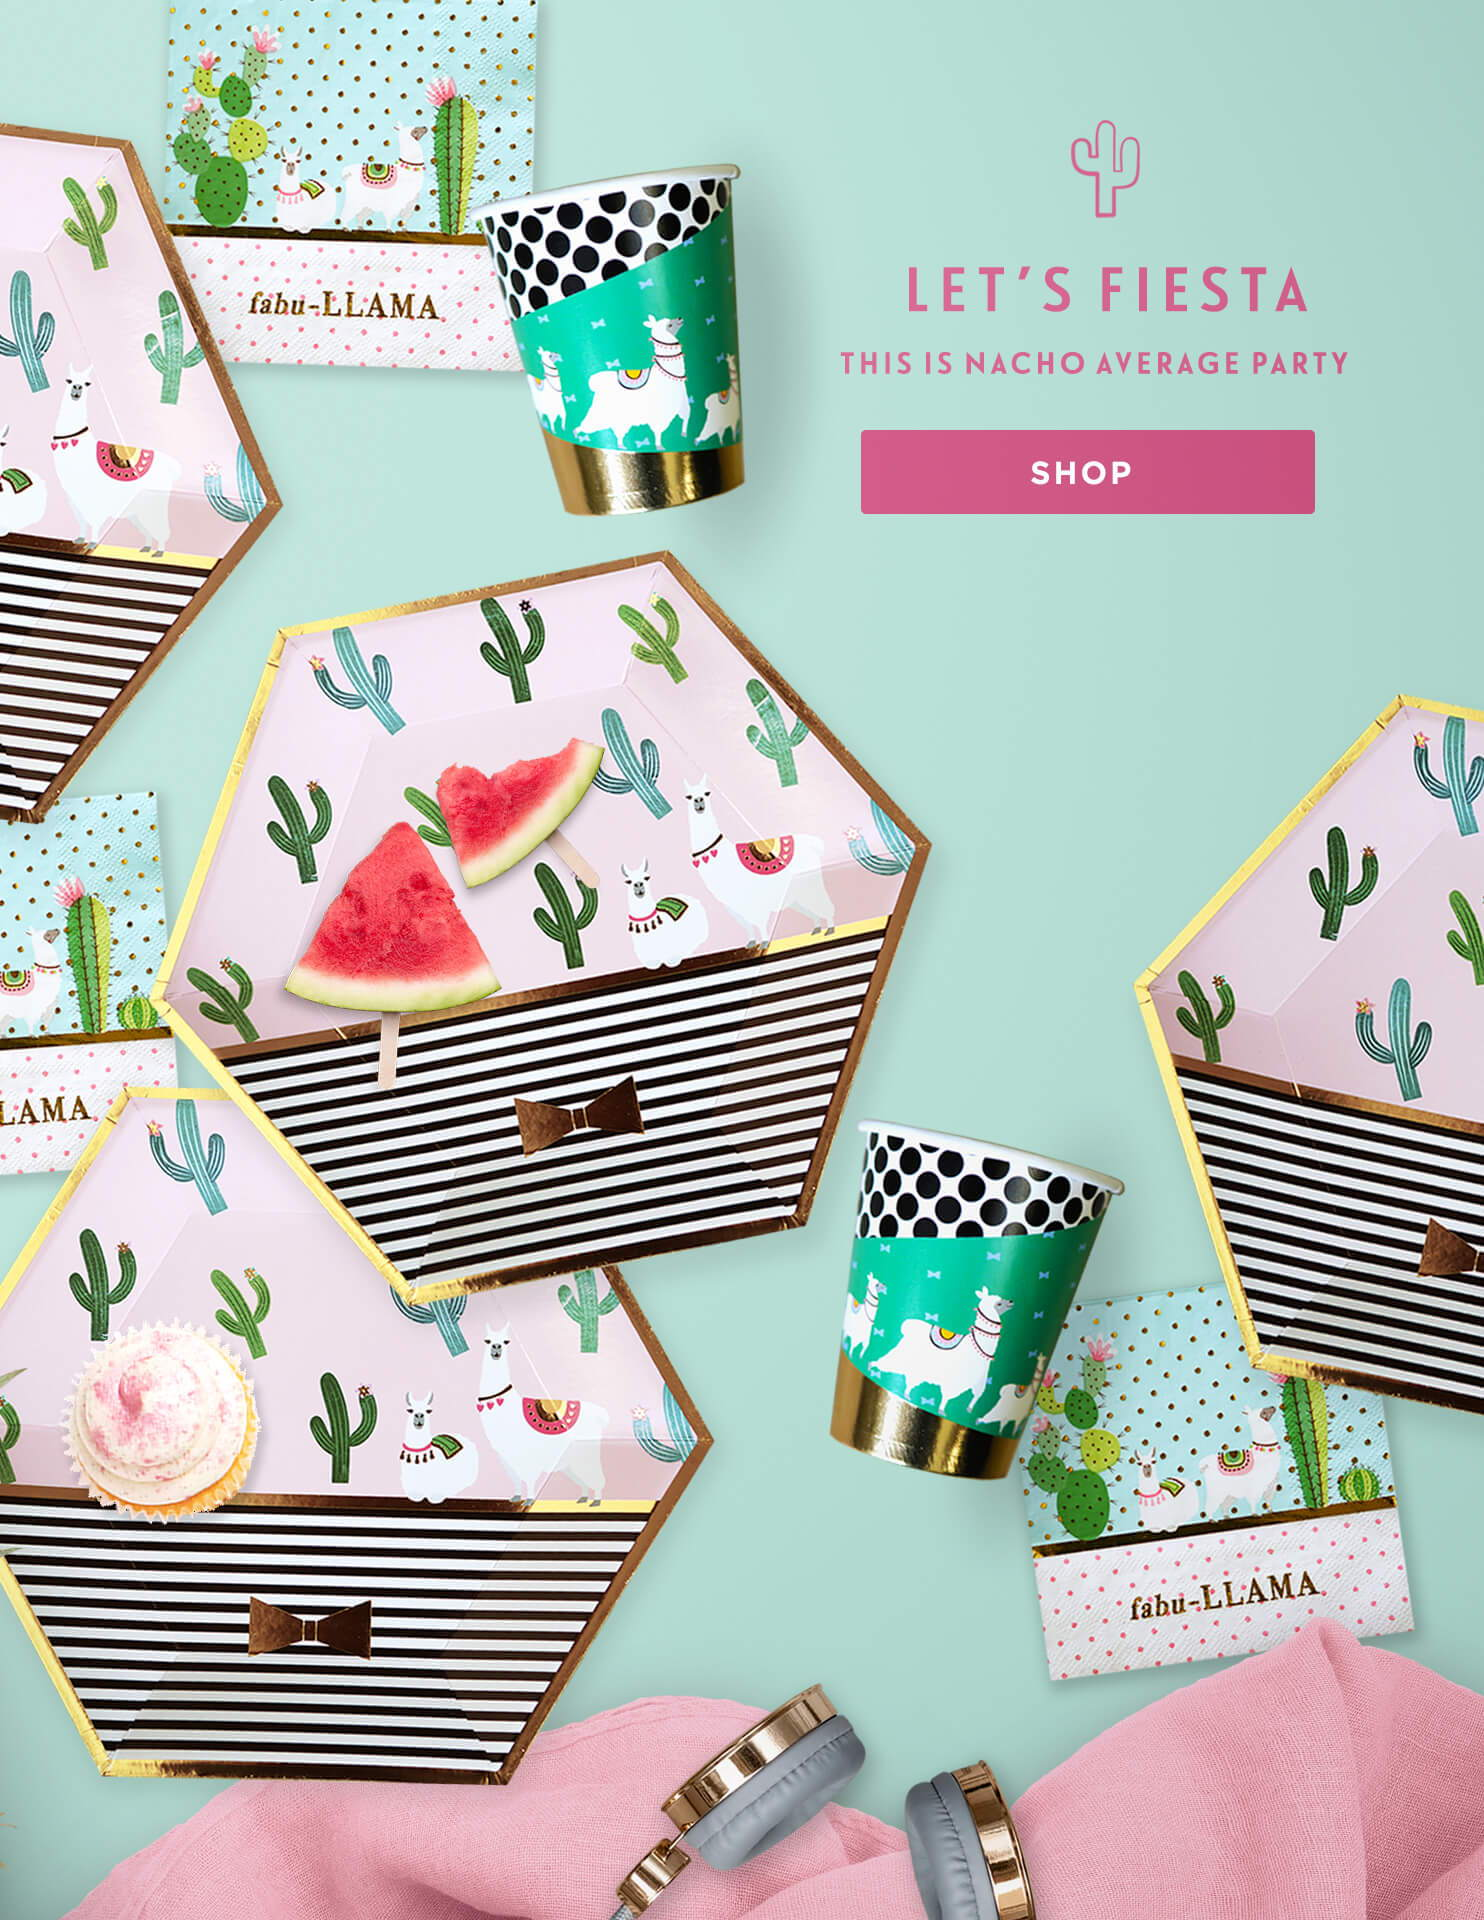 Fiesta Theme Party Supplies, Cactus Party Decor, Llama Birthday